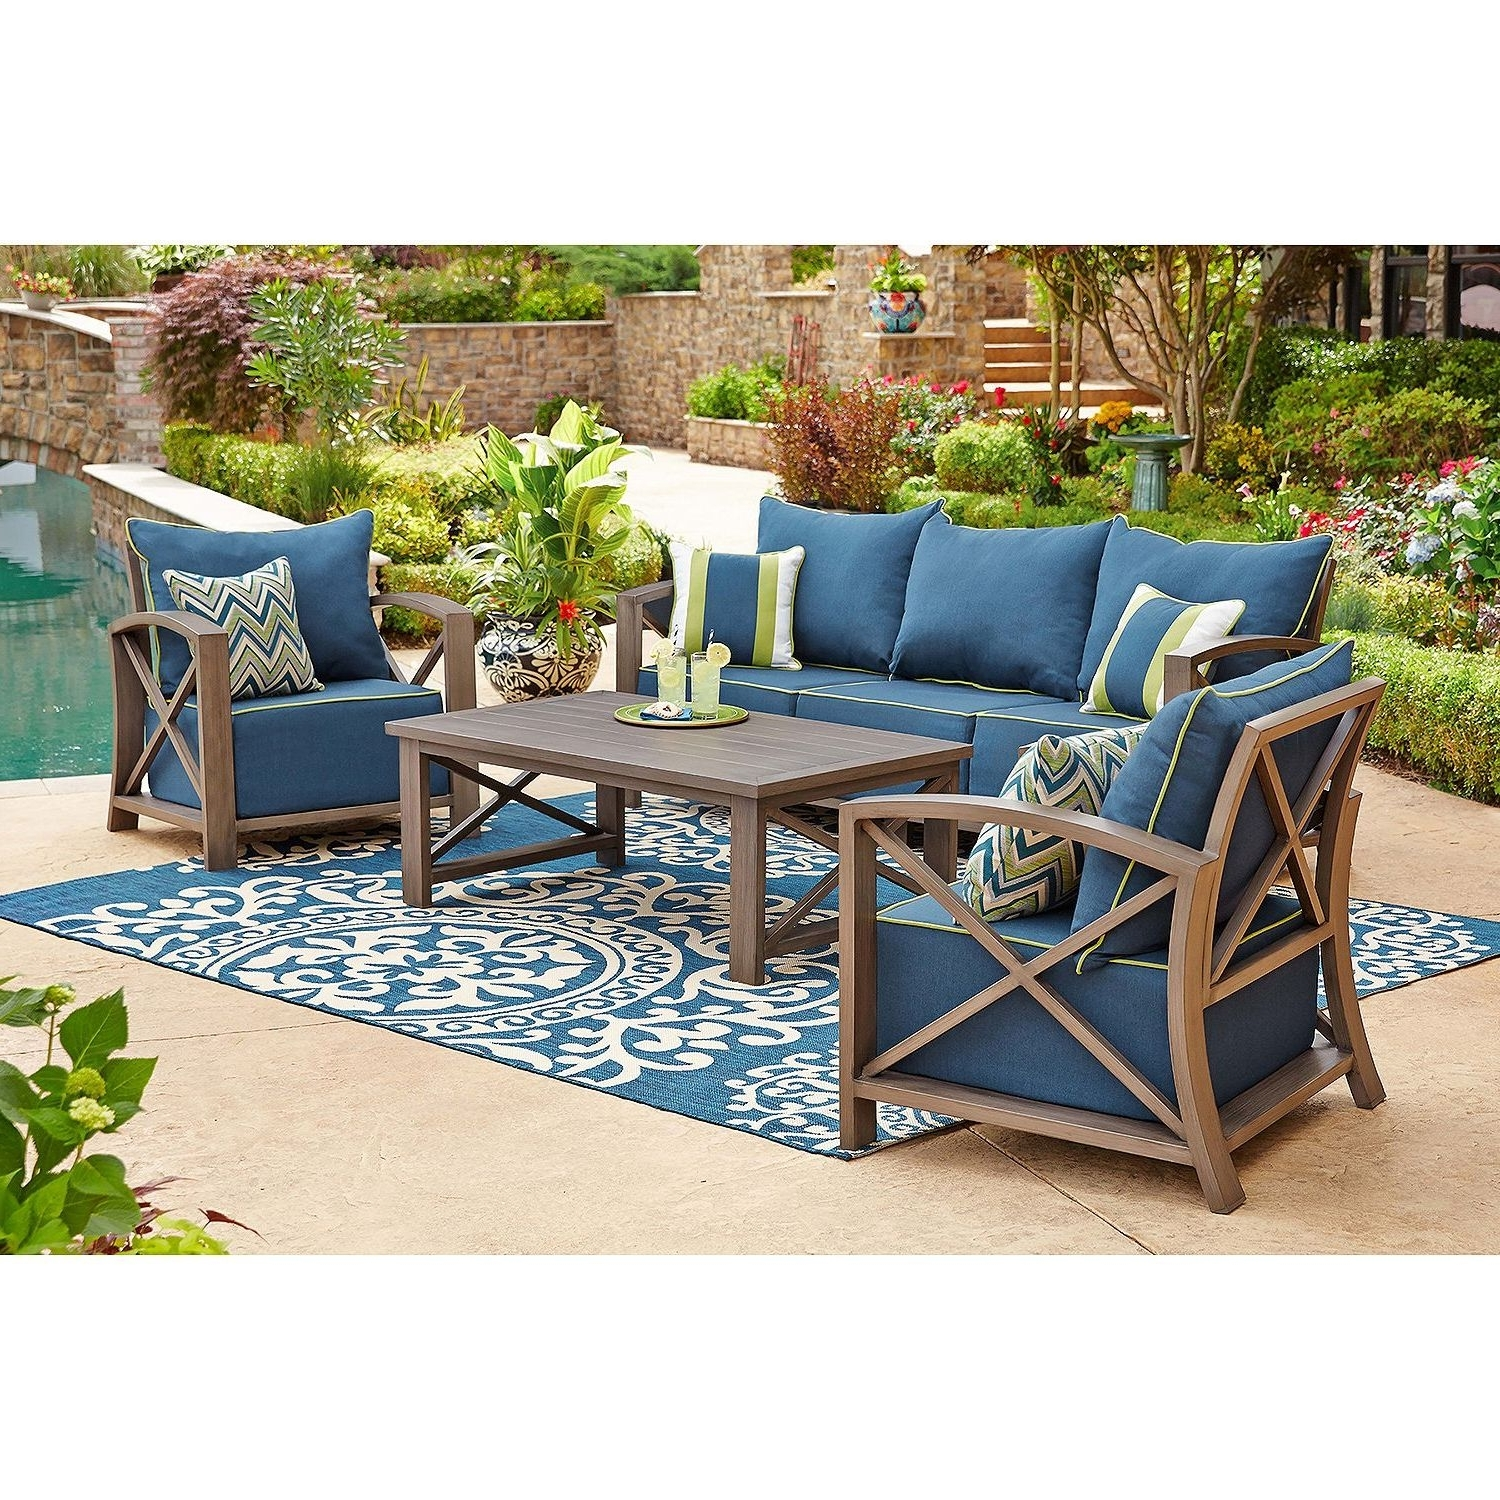 Popular Practical Sam S Club Outdoor Patio Furniture Appealing Replacement Inside Patio Conversation Sets At Sam's Club (View 14 of 15)